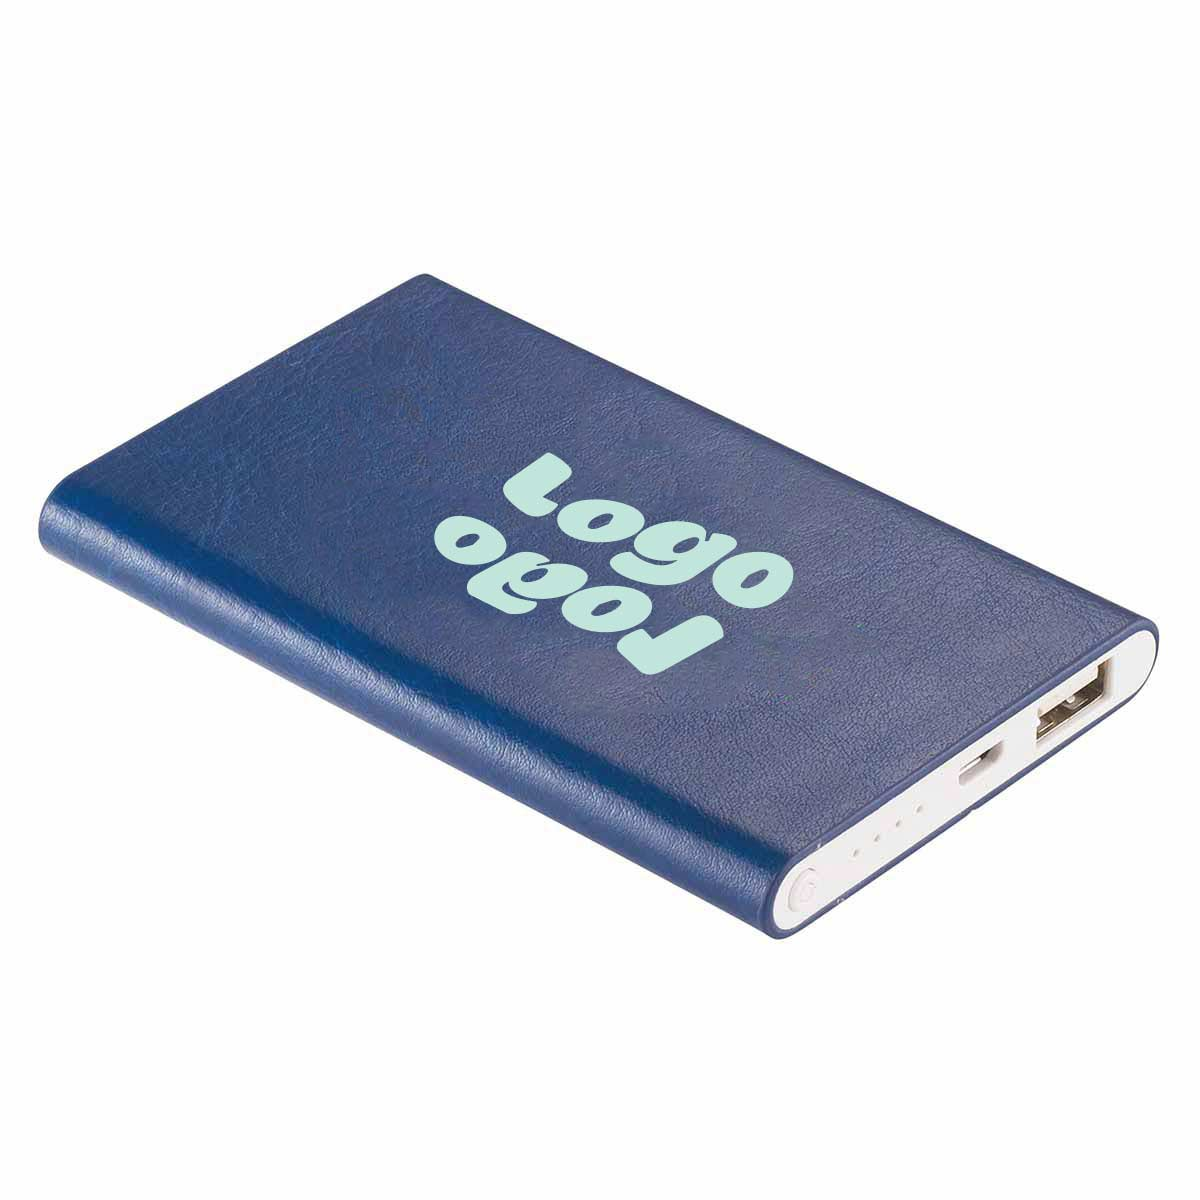 269211 ferrara power bank one color imprint one location